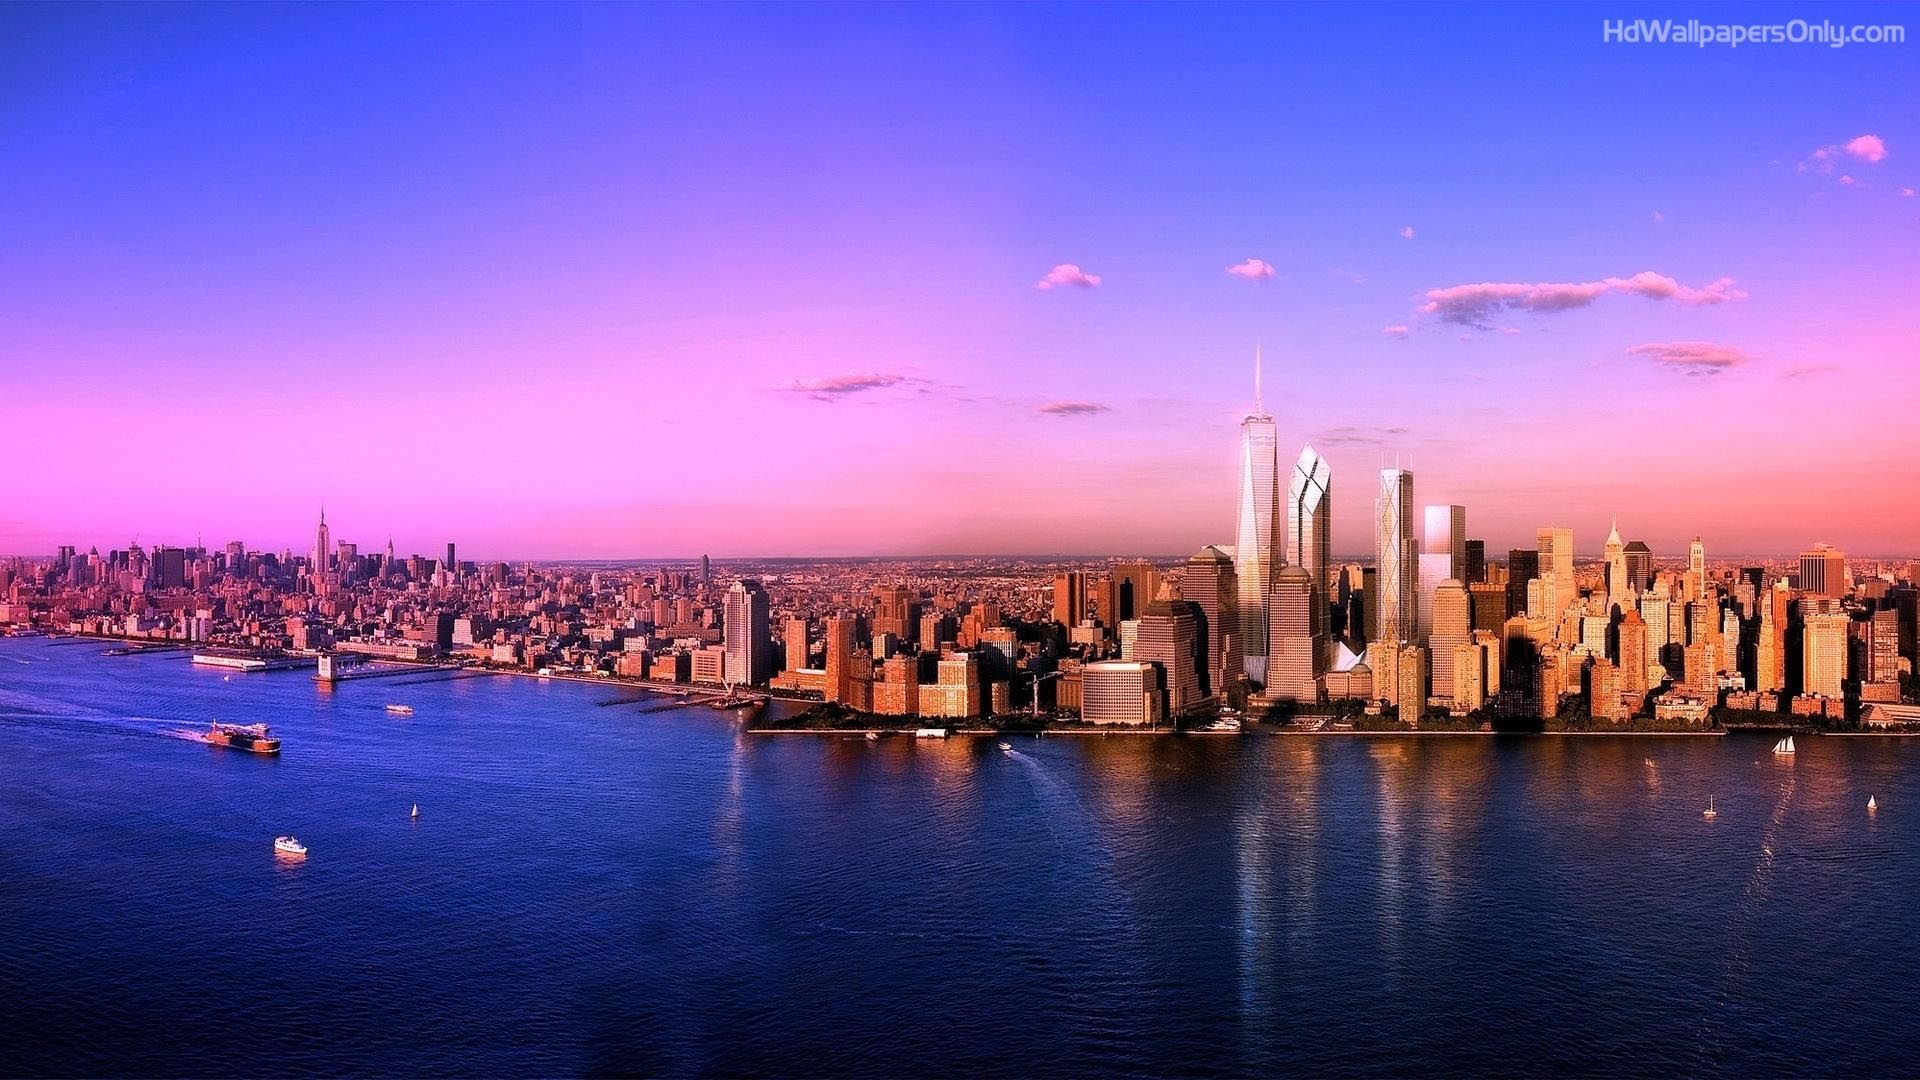 Call It Out For The Love Of The Newyork City Or Nyc As Thy Call It The Most Famous American City To New York Landscape New York Sunset Holidays In